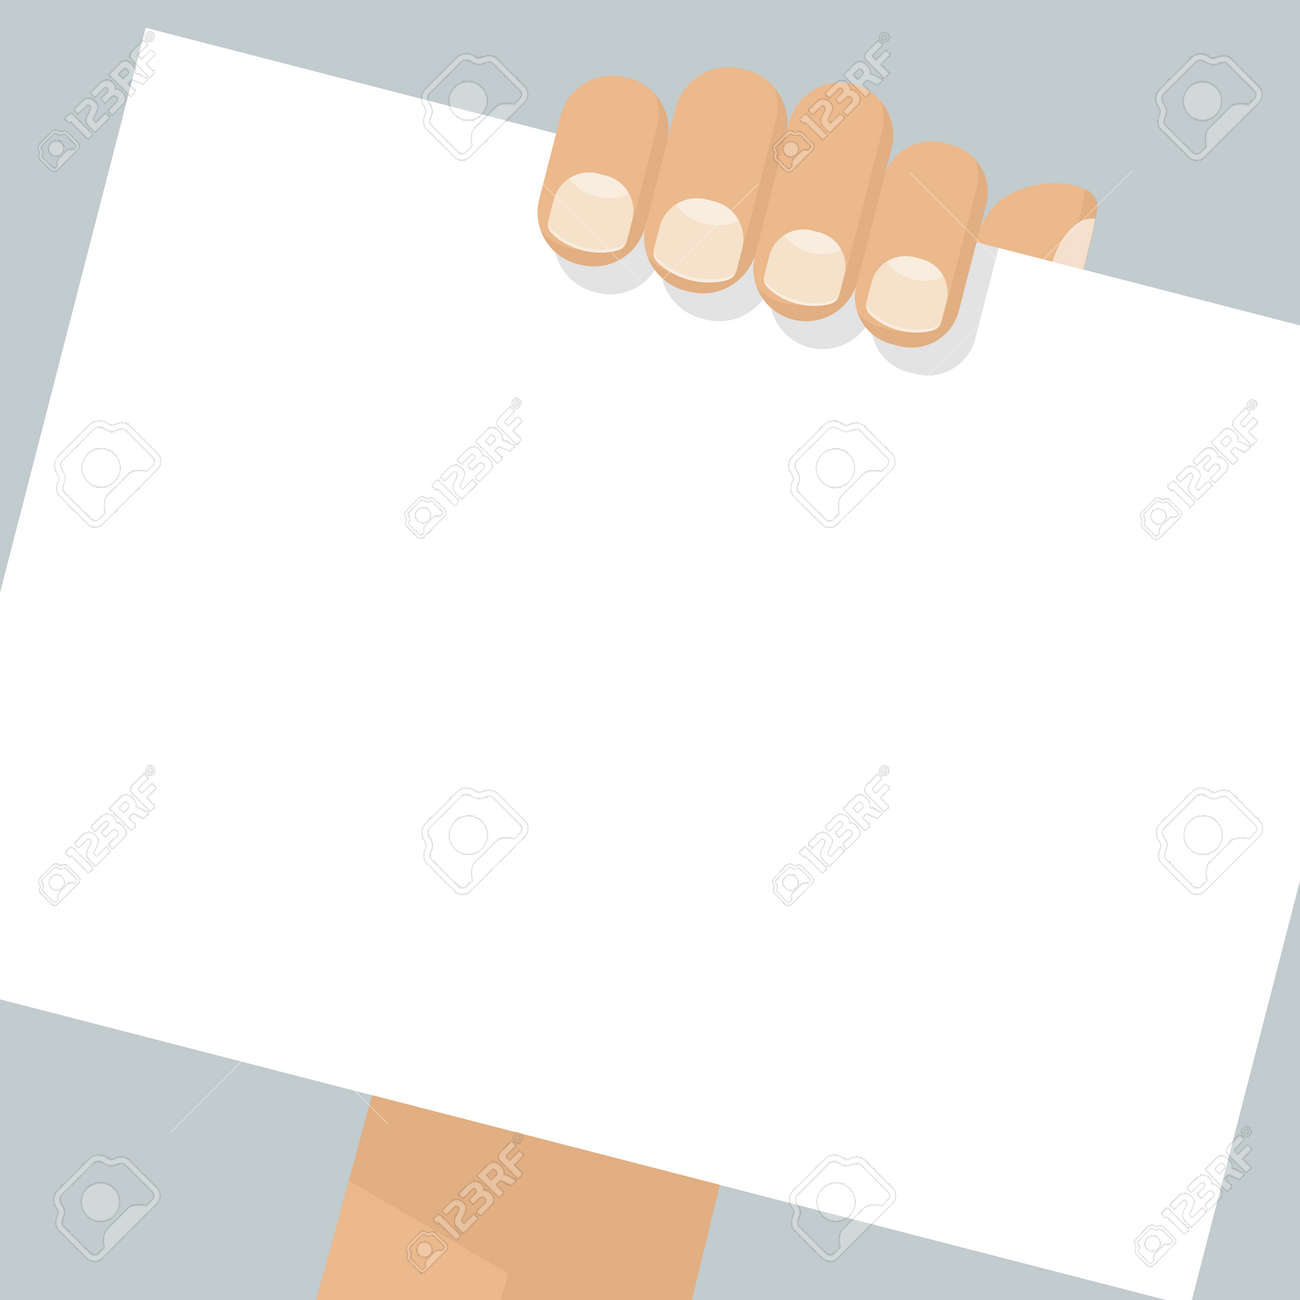 hand holding blank sheet of paper template empty sheet for